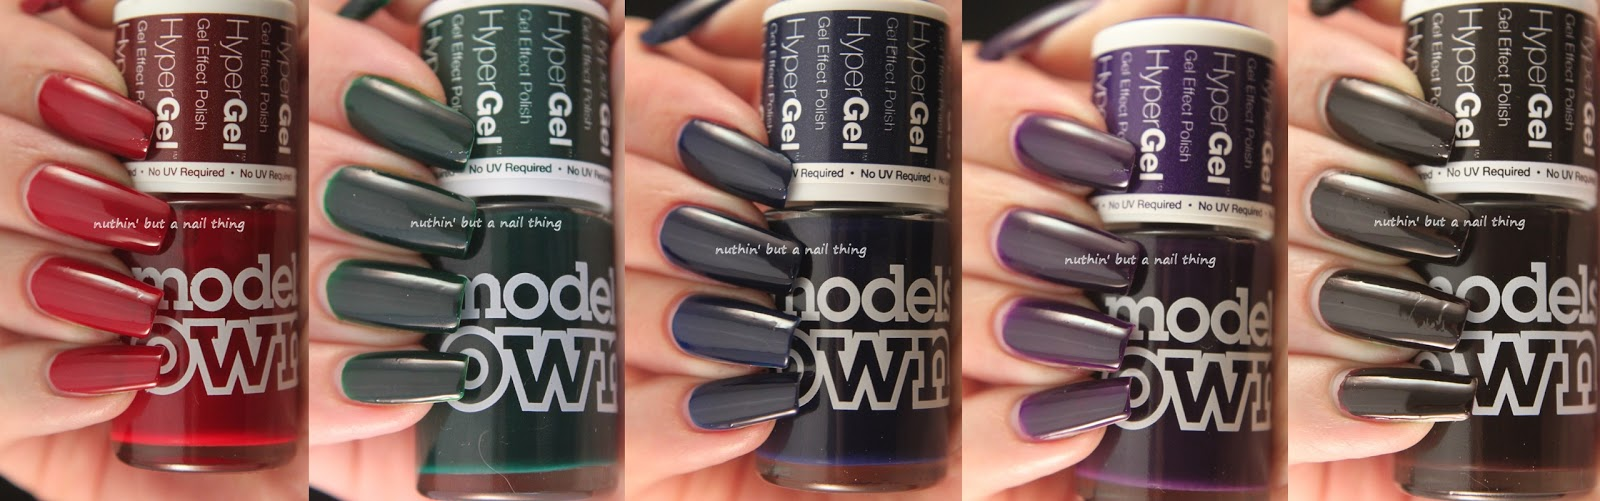 NEW! Models Own HyperGel - New Autumnal Shades!